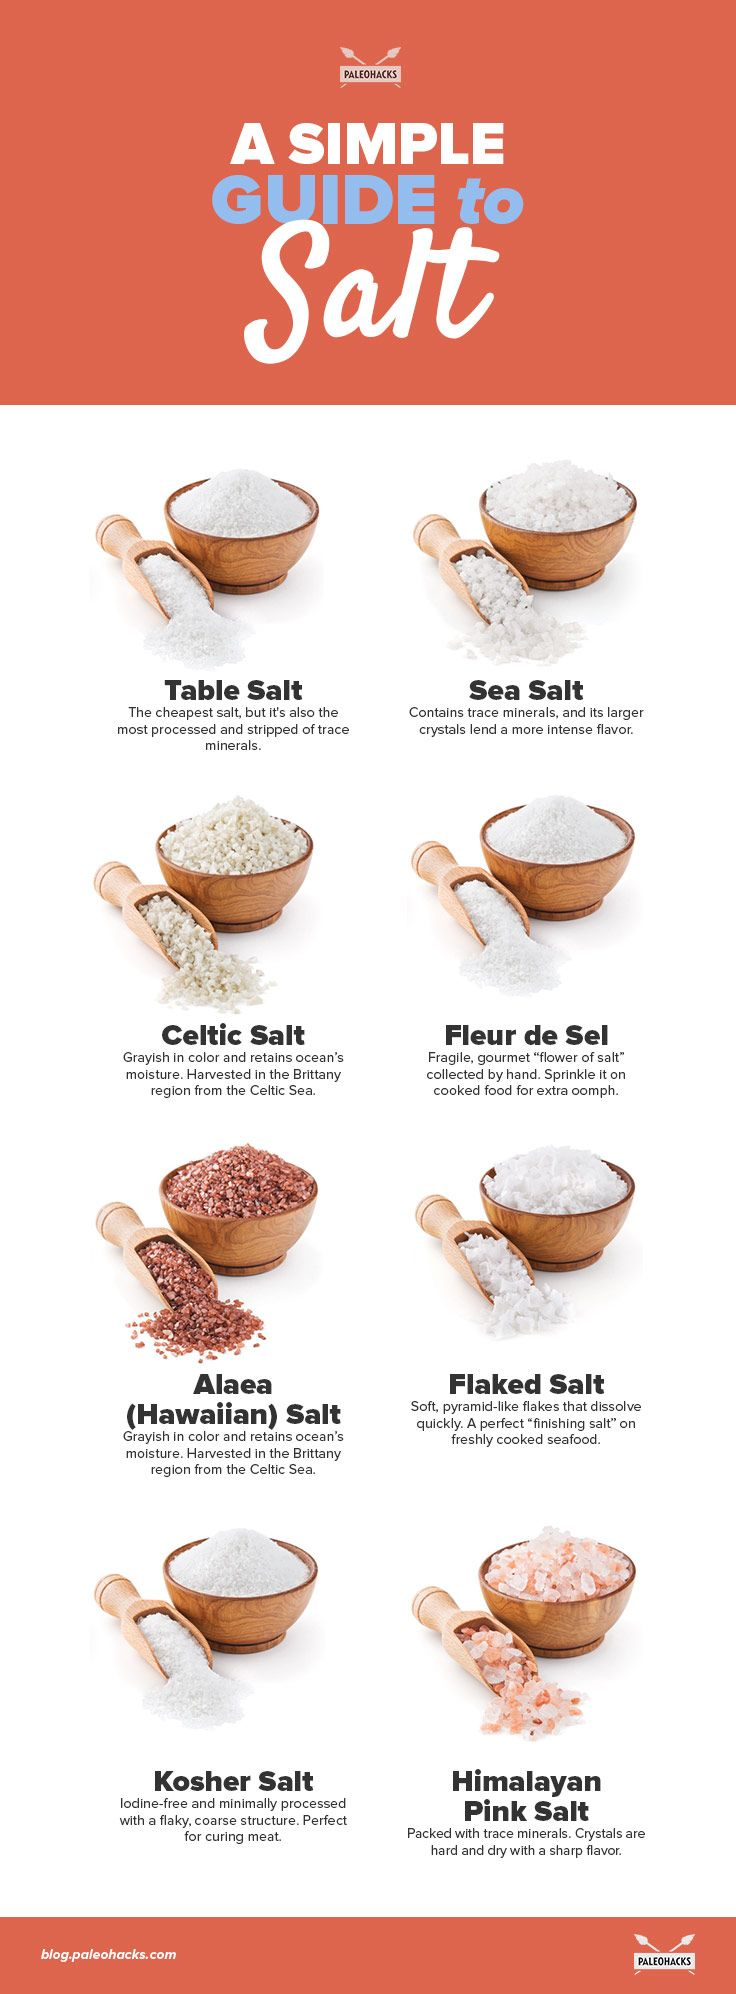 Salt. It seems like such a simple thing, but it's a bundle of confusion for people concerned with their health. Cultures around the world cherished it for thousands of years, some even fighting wars over the precious mineral. For the full article visit us here: http://paleo.co/guidesalt